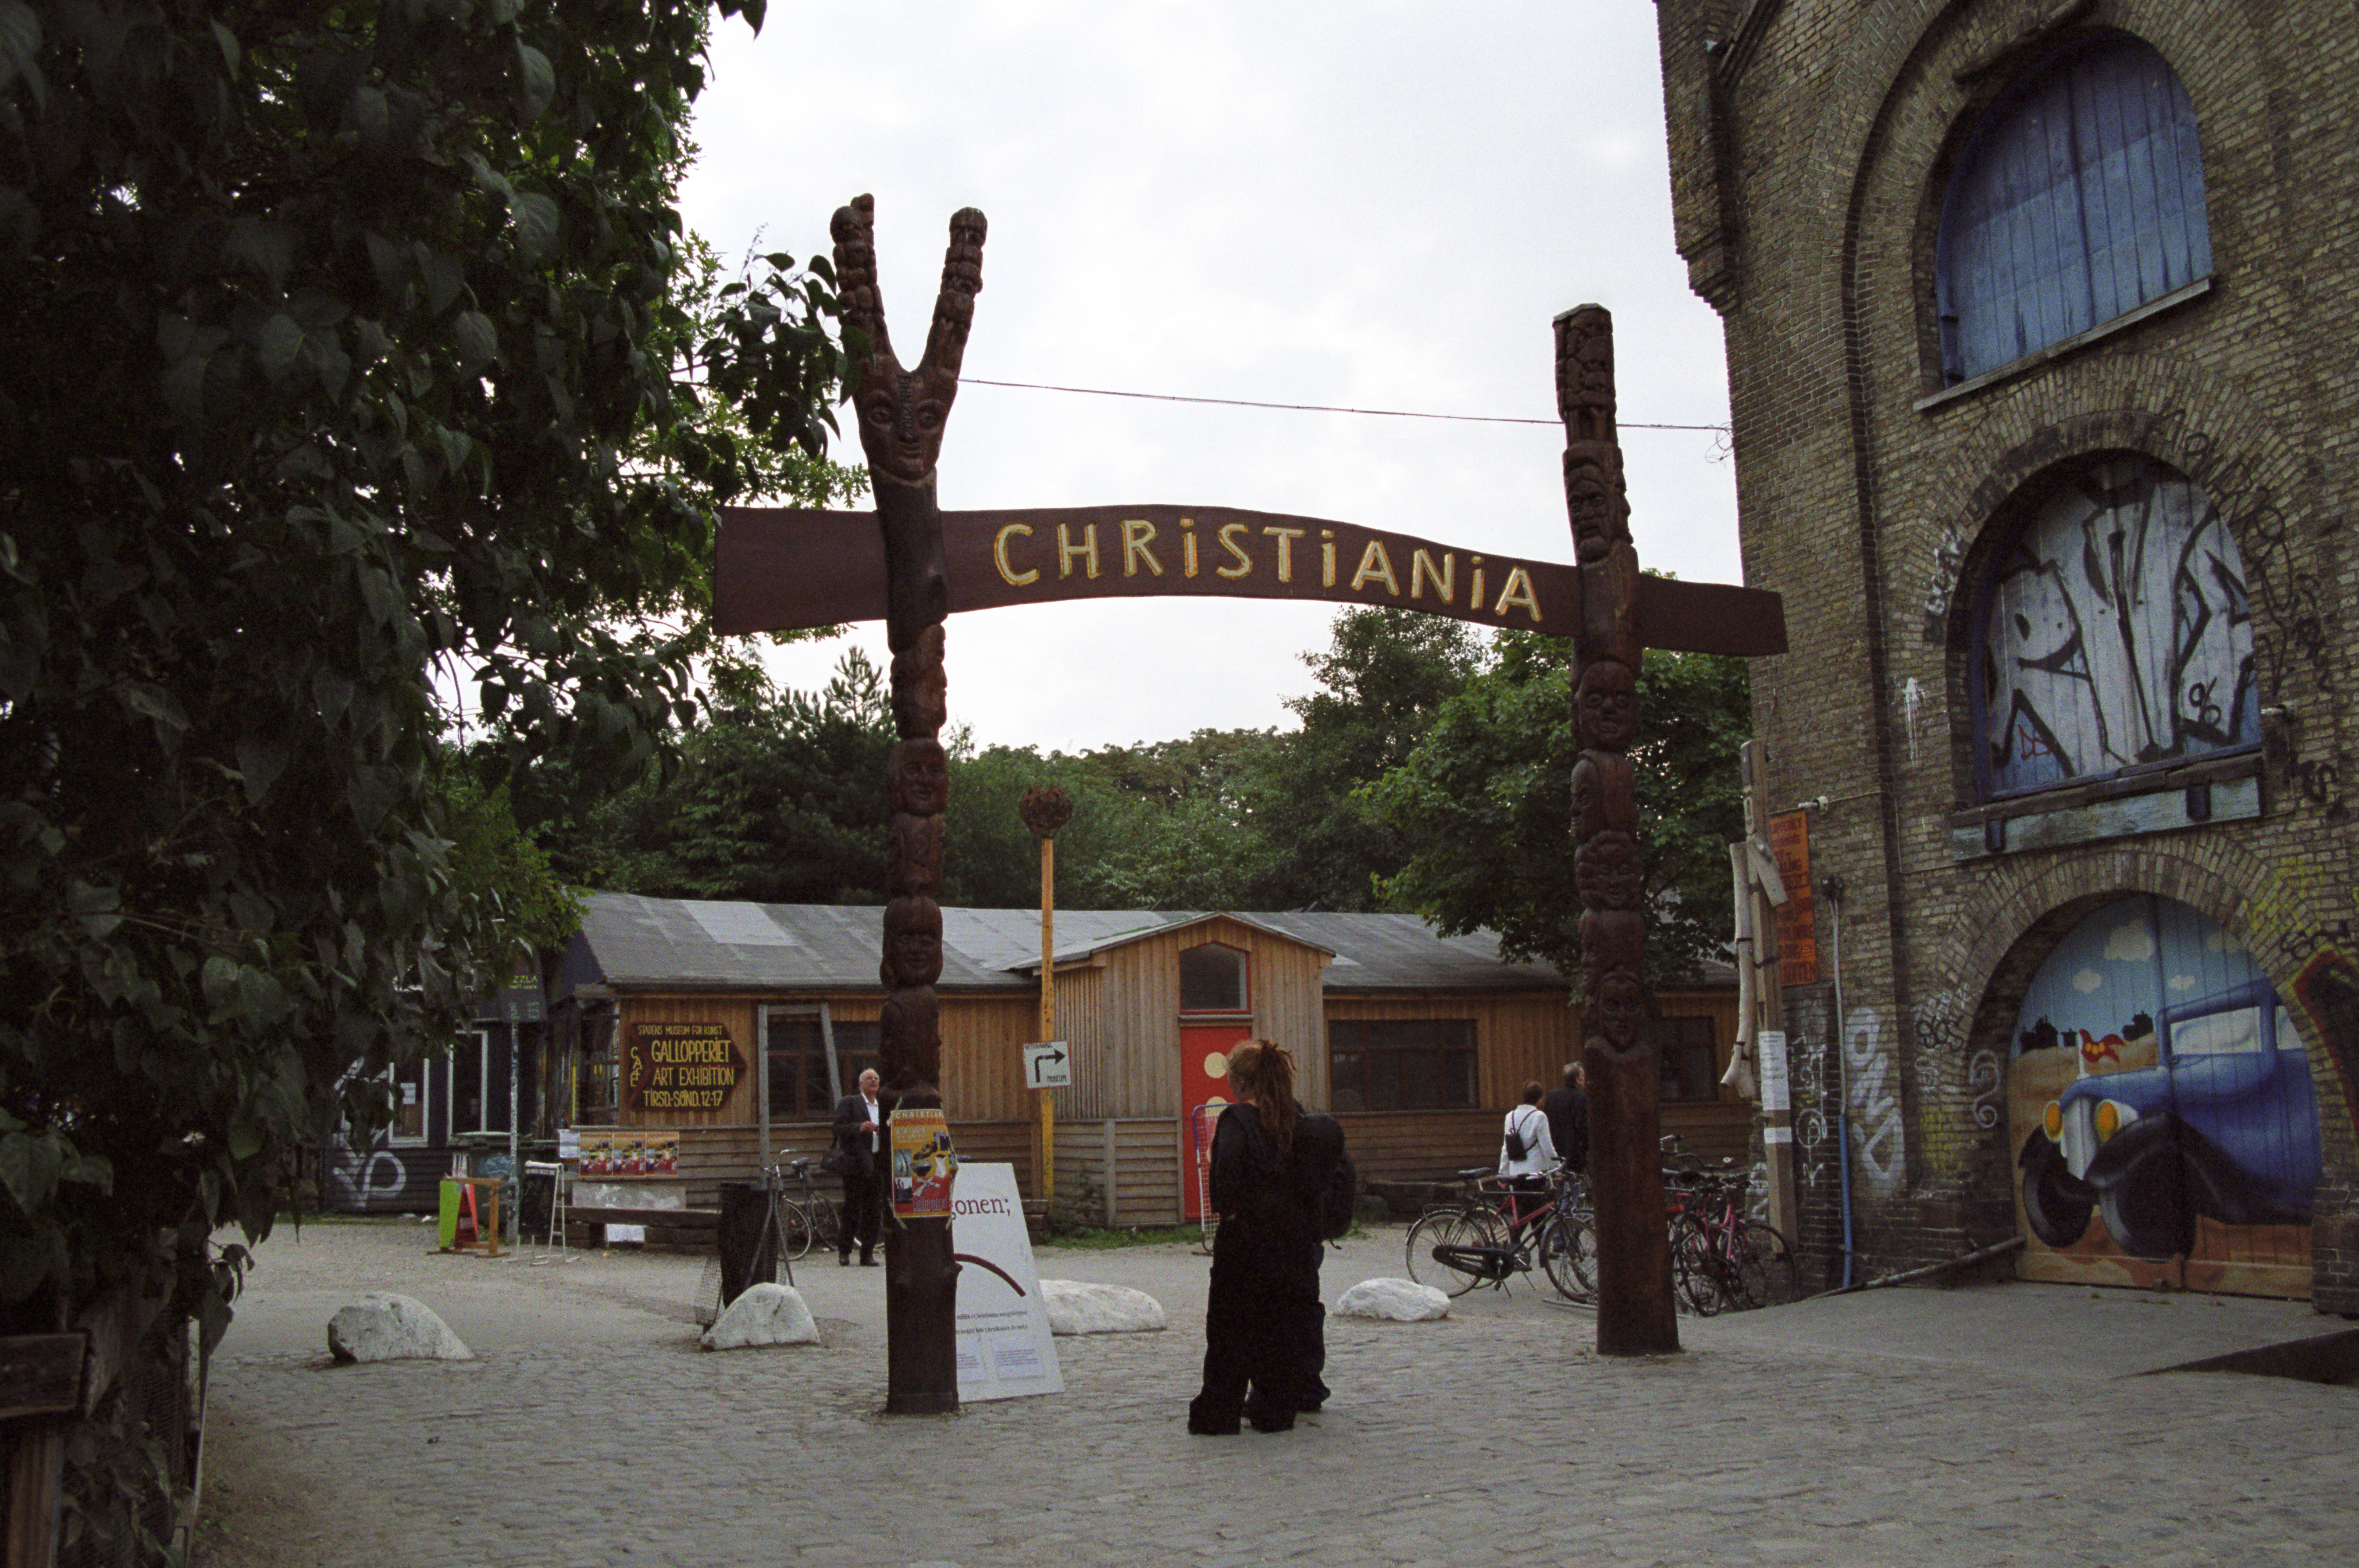 christiania wikipedia pic